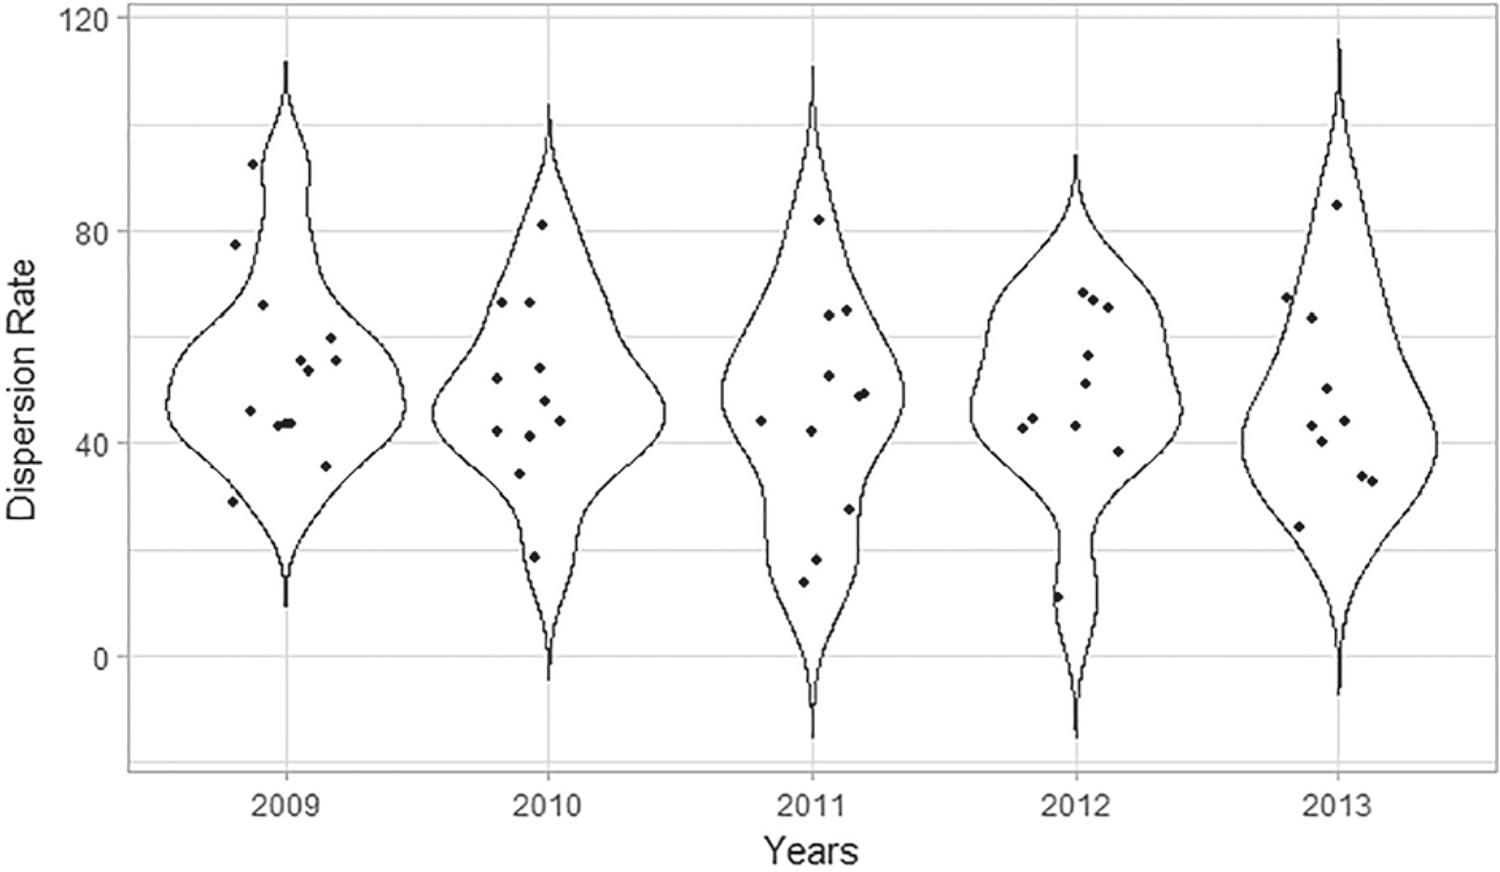 Violin plots of triatomine dispersion rates for the five studied years in the 13 municipalities that form the 20th Regional Health Coordination (CRES) of the Ceara State.